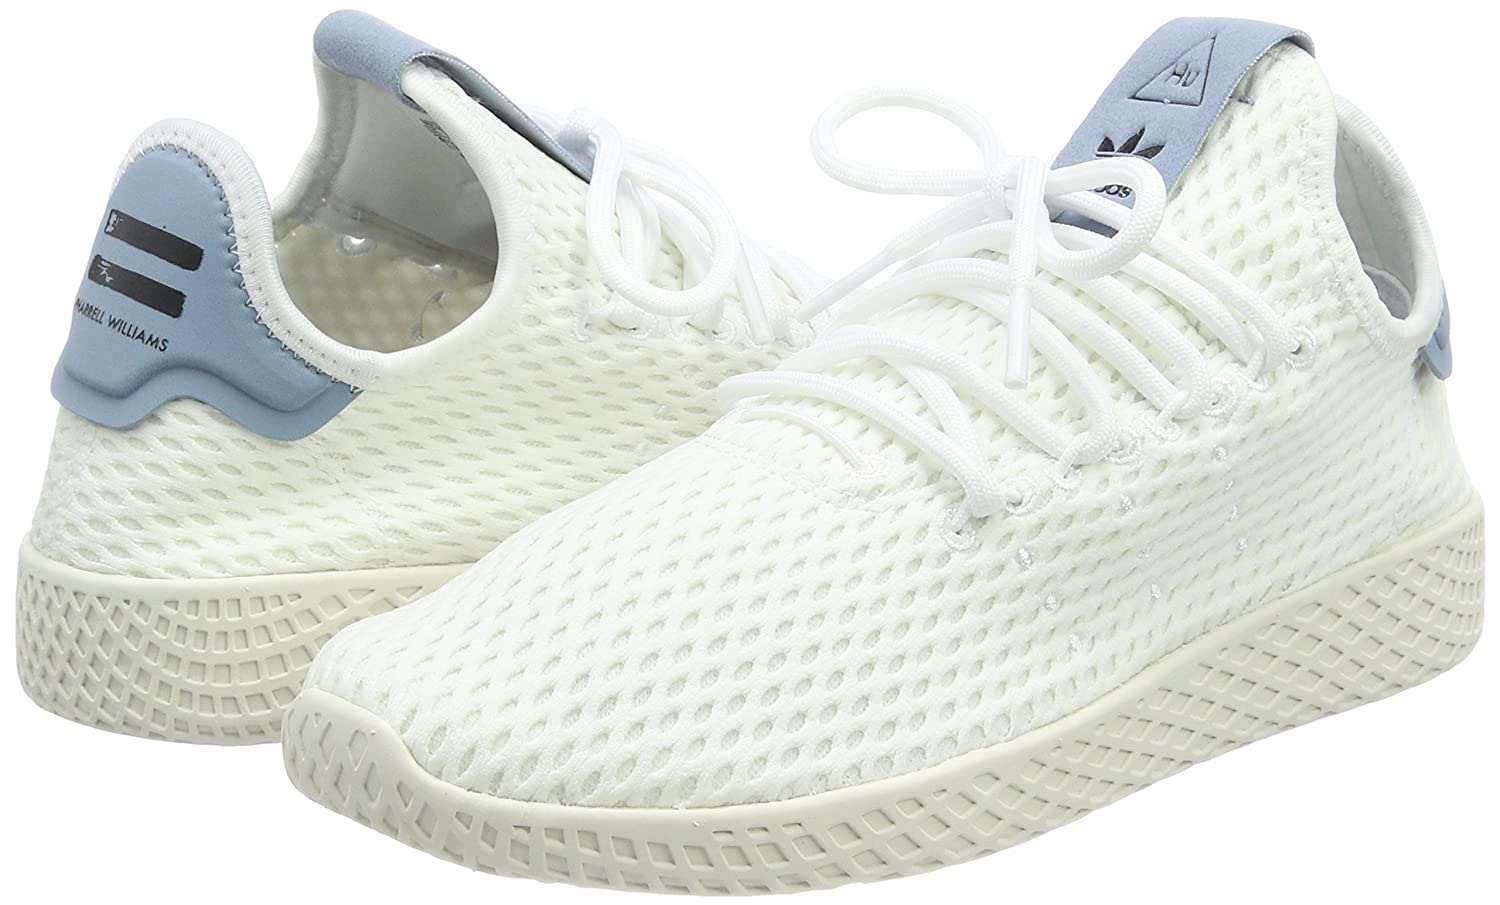 Amazon.com: Adidas Pharrell Williams Tennis Hu Mens Sneakers White: Clothing